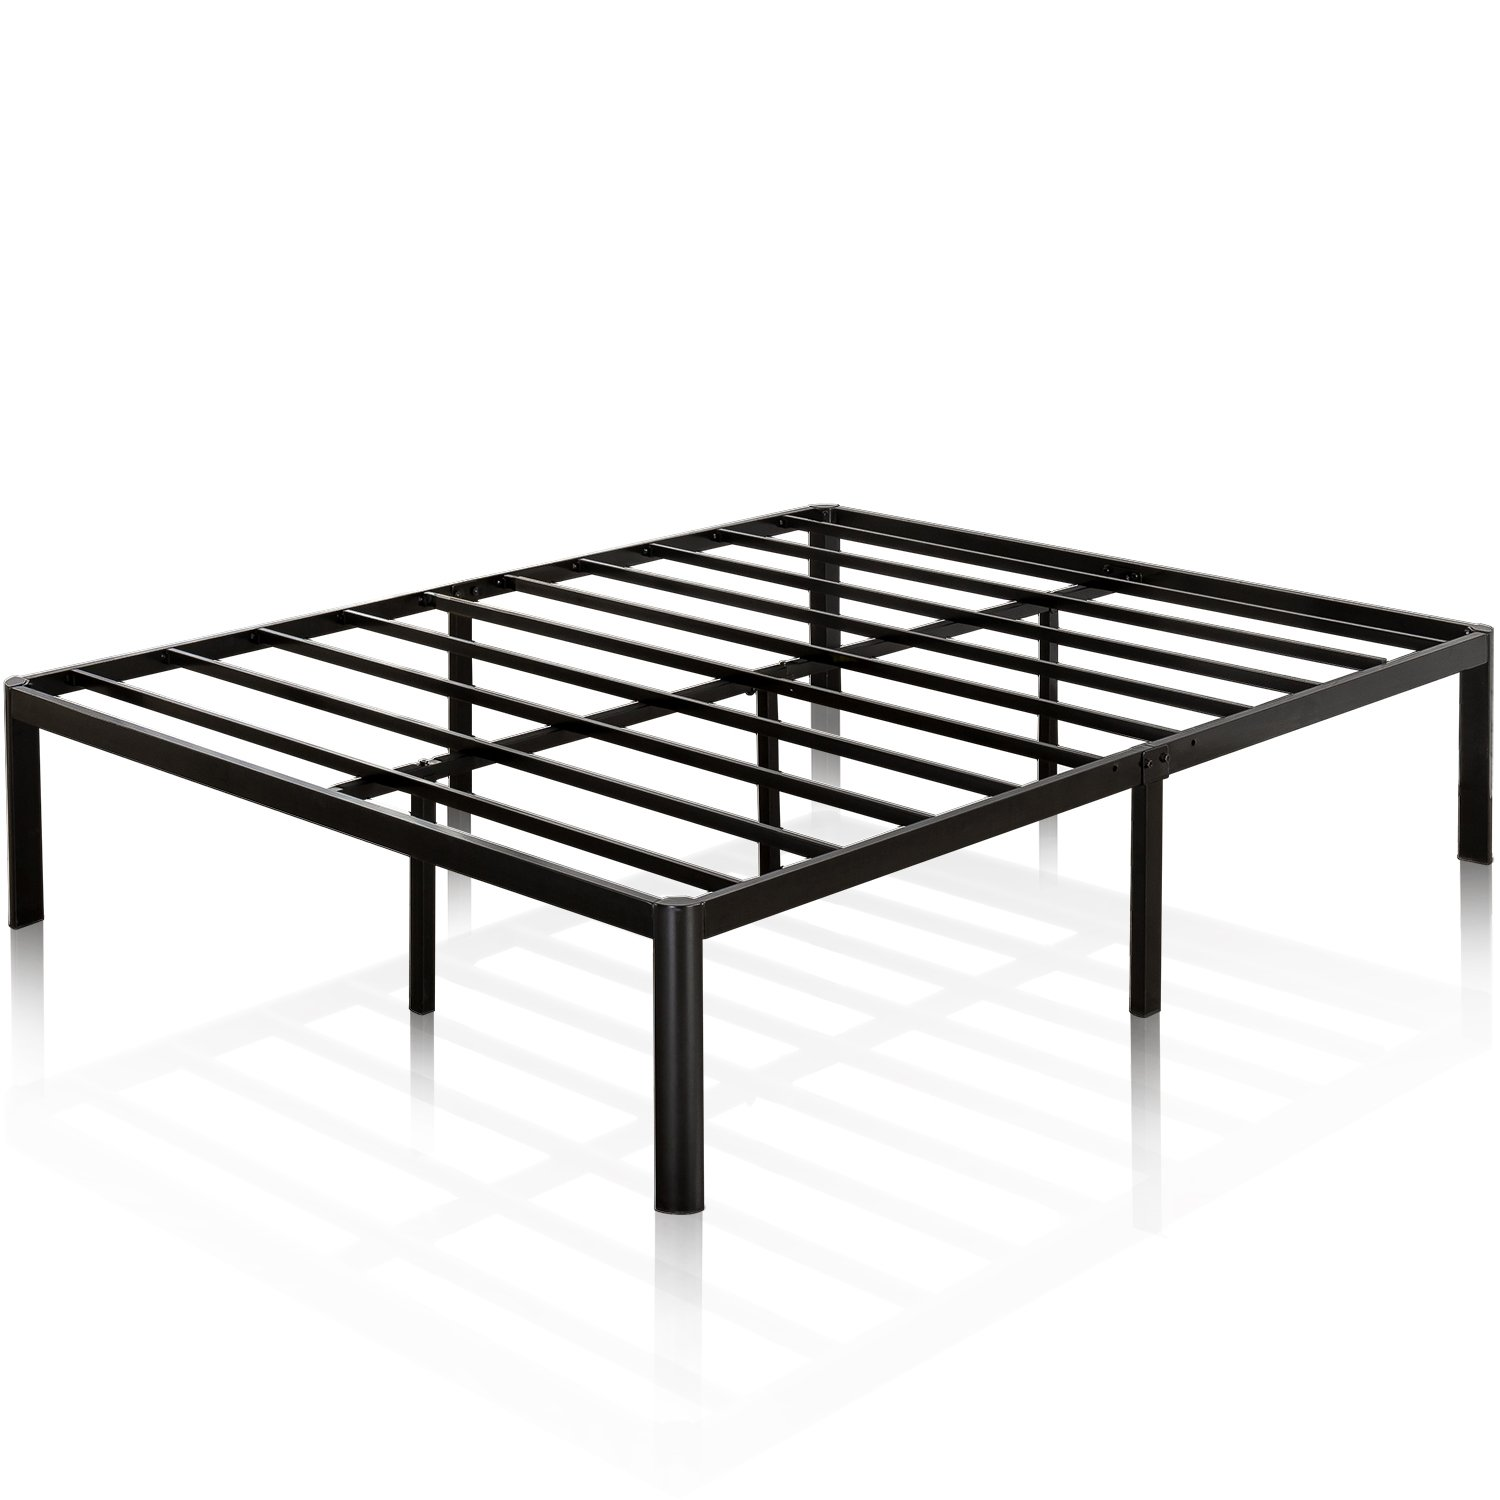 Zinus Van 16 Inch Metal Platform Bed Frame with Steel Slat Support / Mattress Foundation, Twin by Zinus